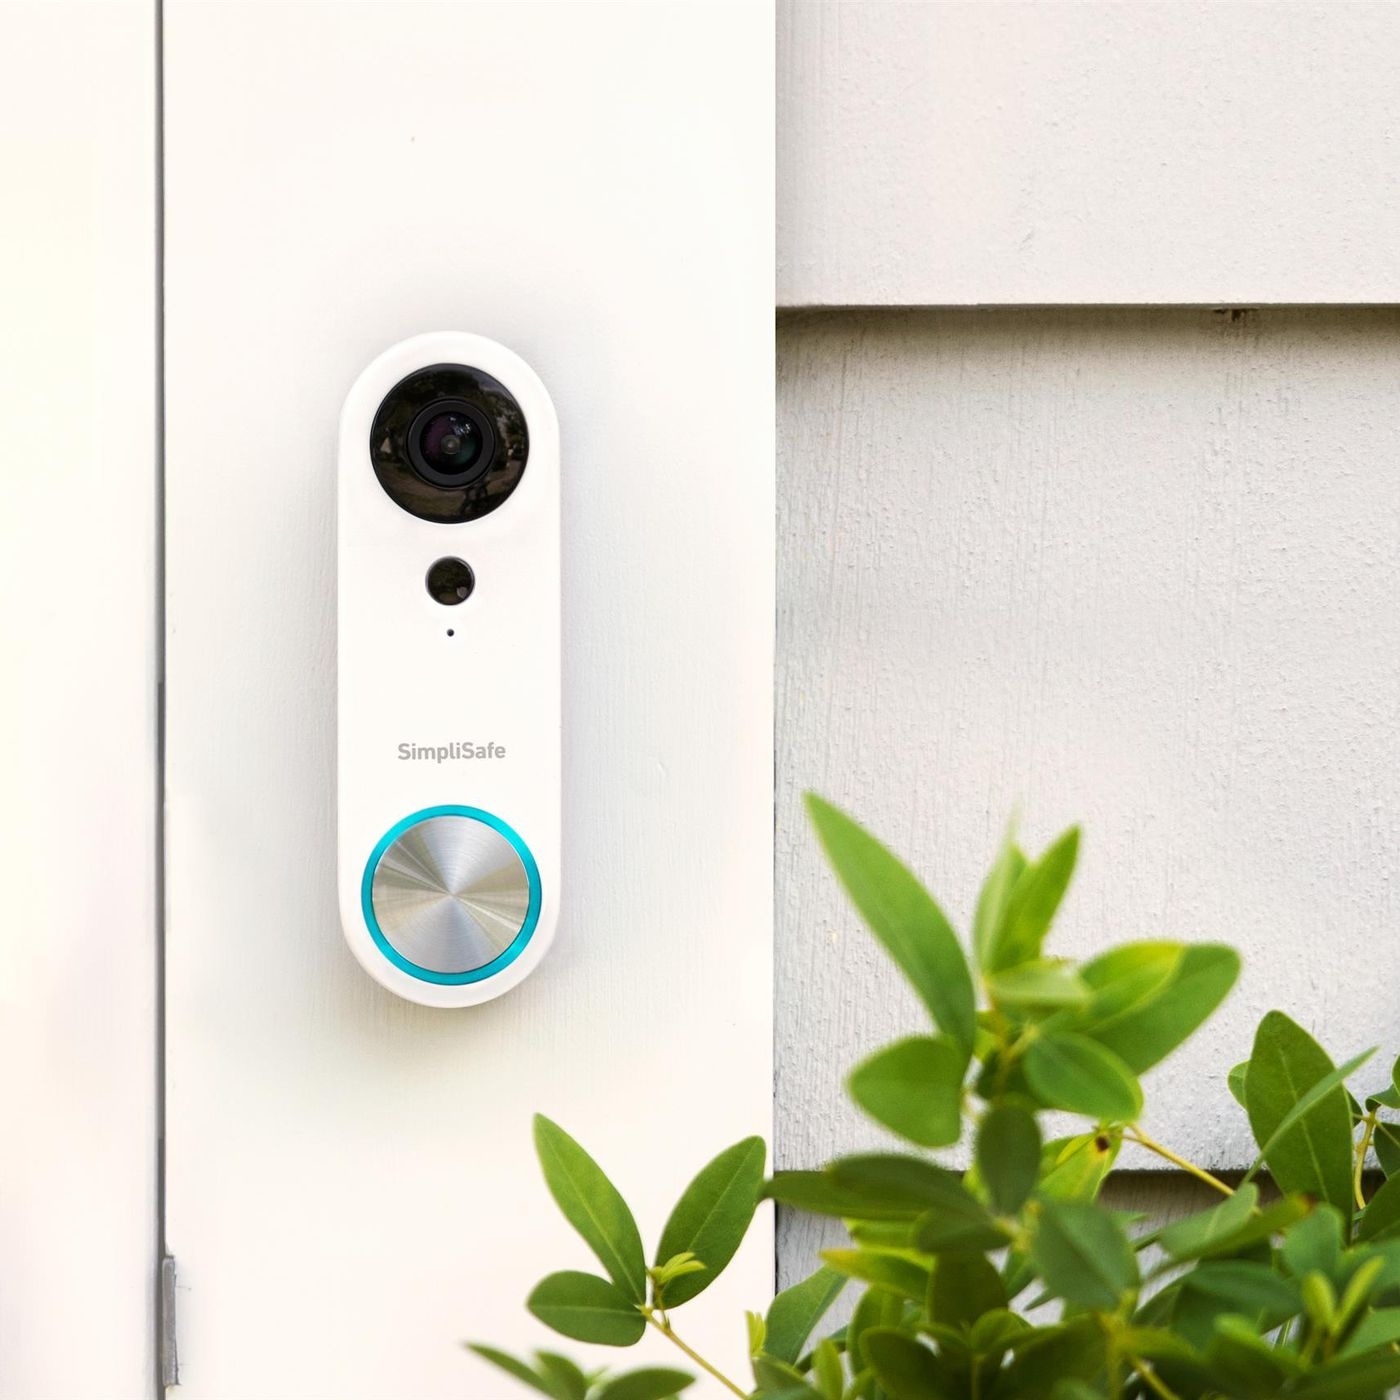 SimpliSafe releases a new smart doorbell with a wide angle camera